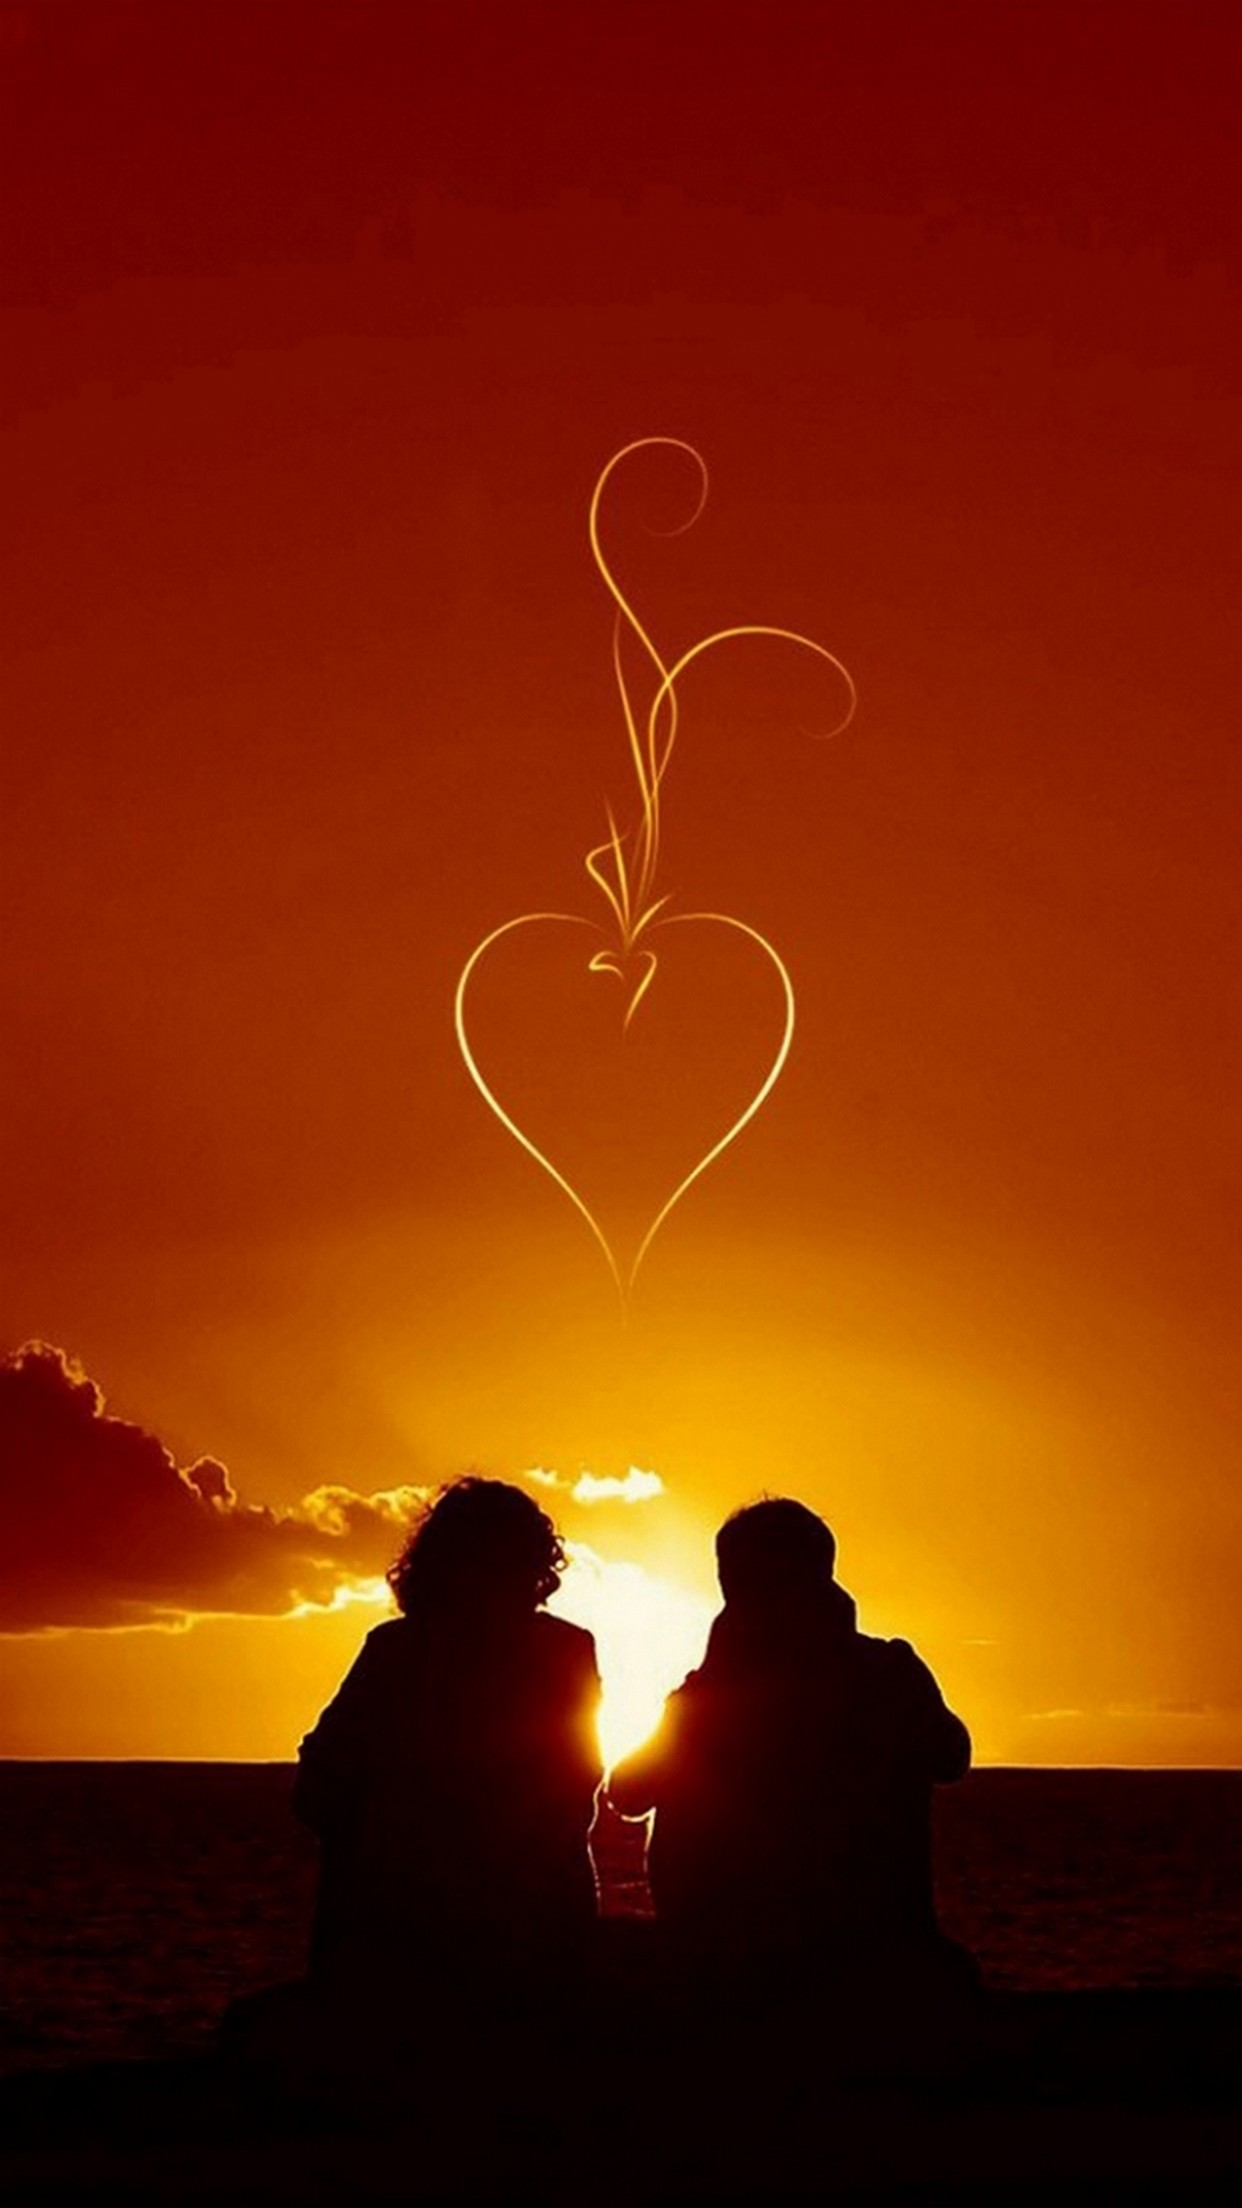 Love Wallpapers Hd Vertical : Love Wallpapers Images ??